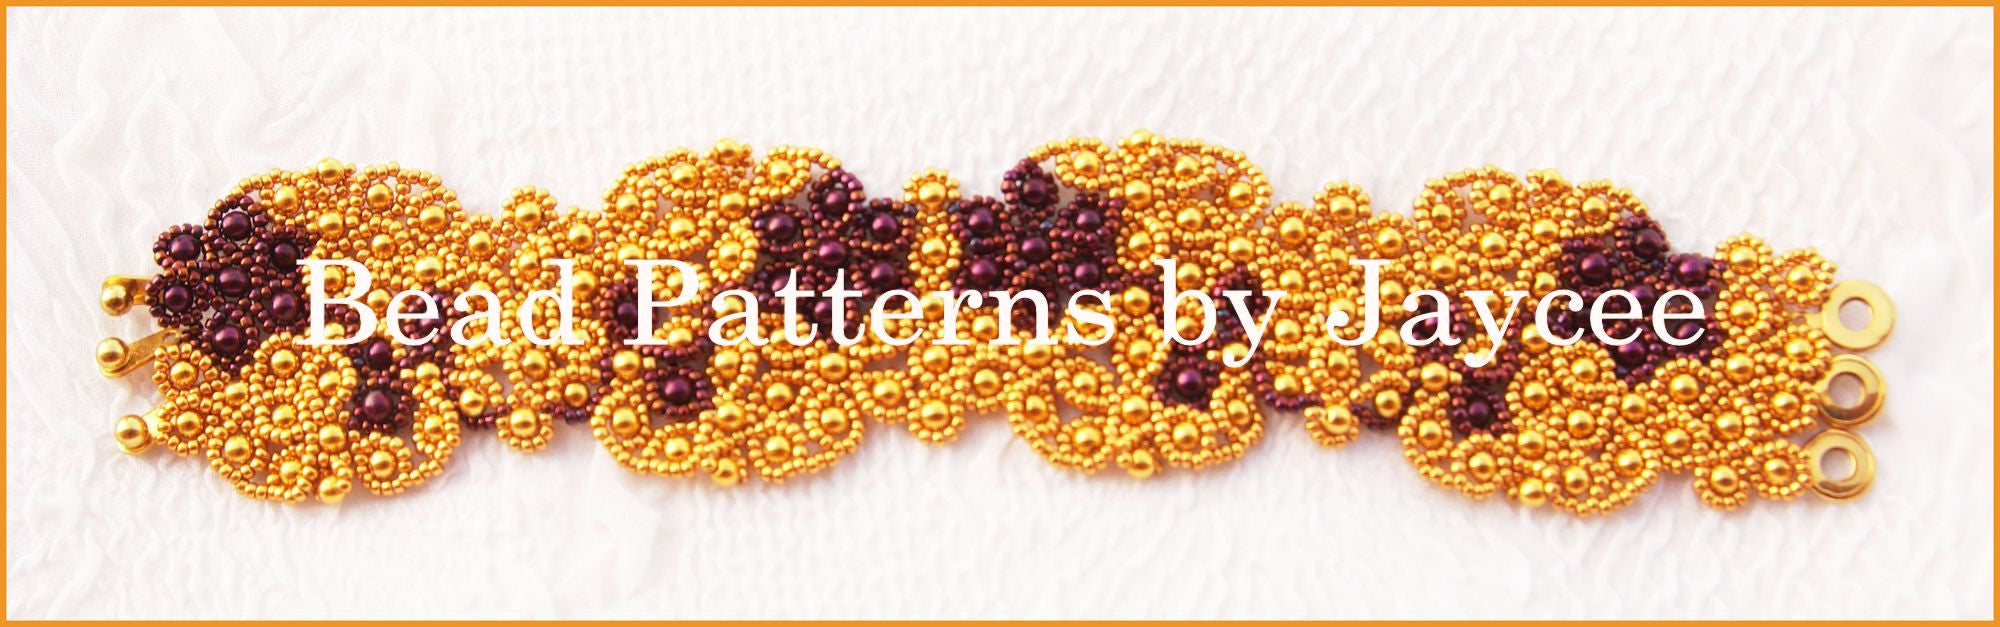 Bead Patterns by Jaycee, bead tutorials